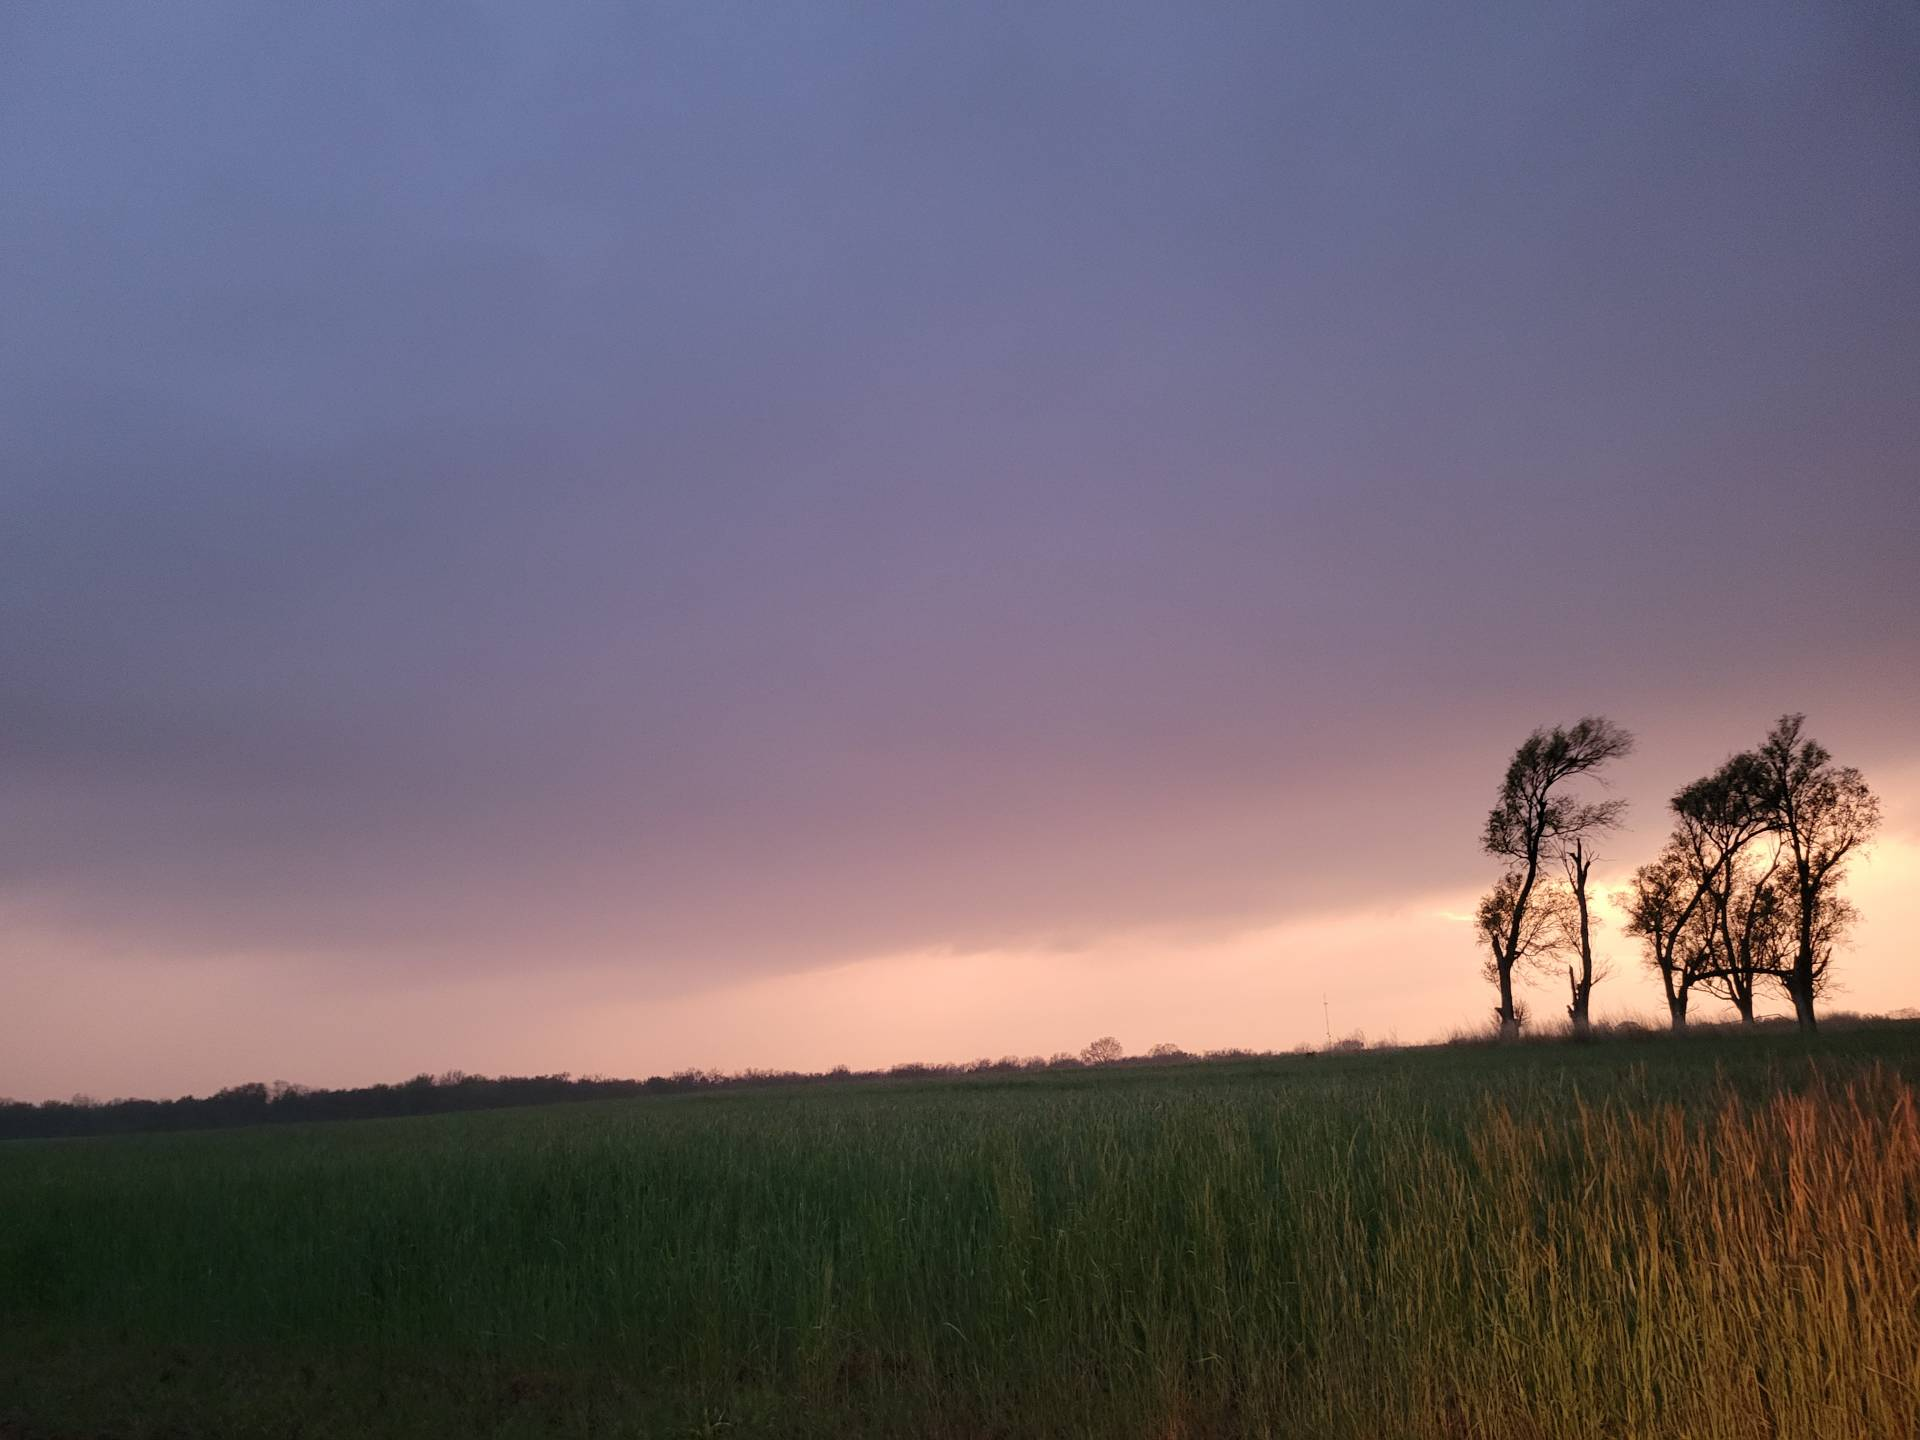 Storm near Argonia is starting to fall apart at Sunset. #kswx